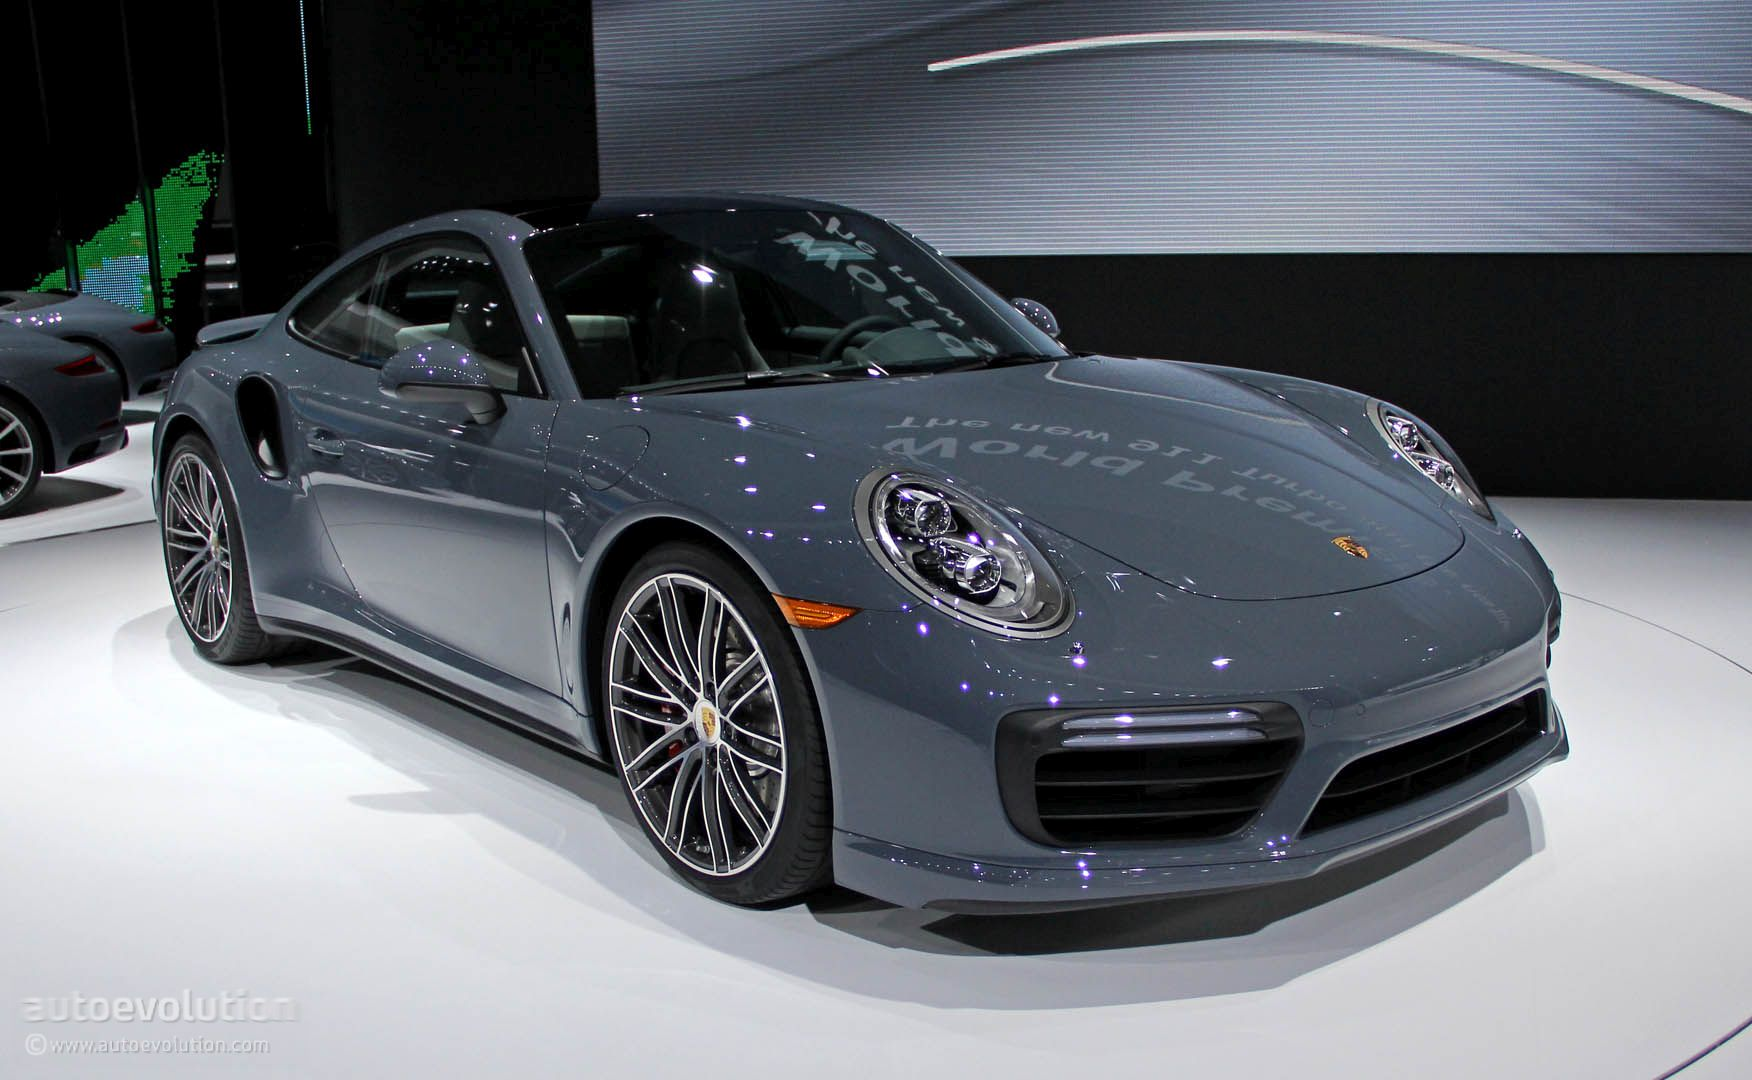 wild boar porsche 911 turbo s cabriolet wrap looks brutal. Black Bedroom Furniture Sets. Home Design Ideas